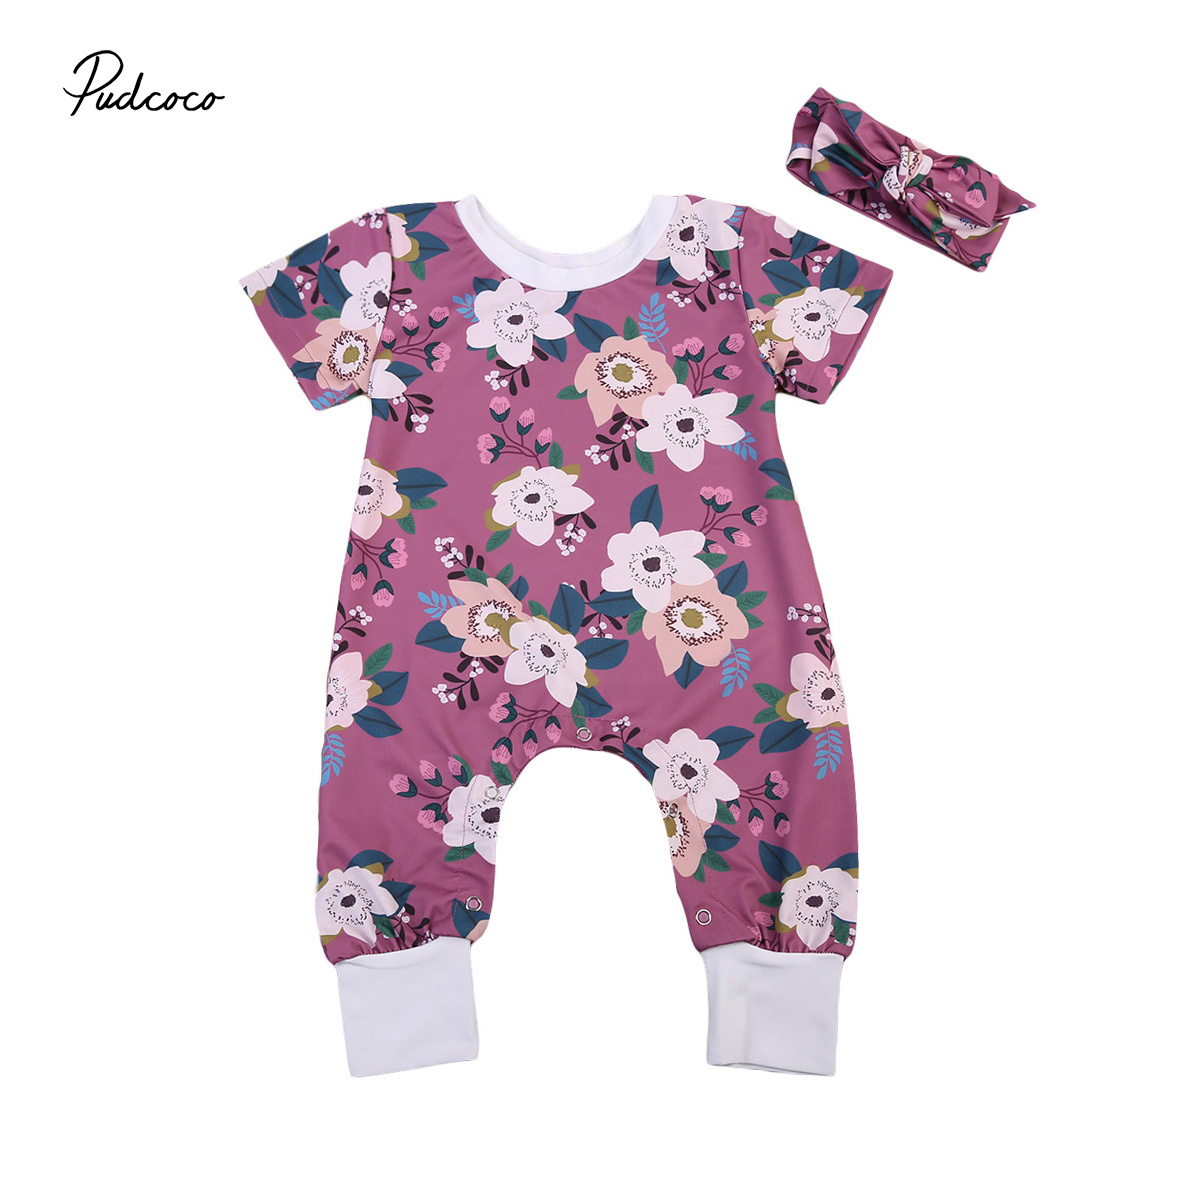 Pudcoco Kids Baby Girls Floral Romper Newborn Short Sleeve Jumpsuit Playsuit Headband Autumn Cotton One-Piece Clothes 0-24M pudcoco newborn infant baby girls clothes short sleeve floral romper headband summer cute cotton one piece clothes